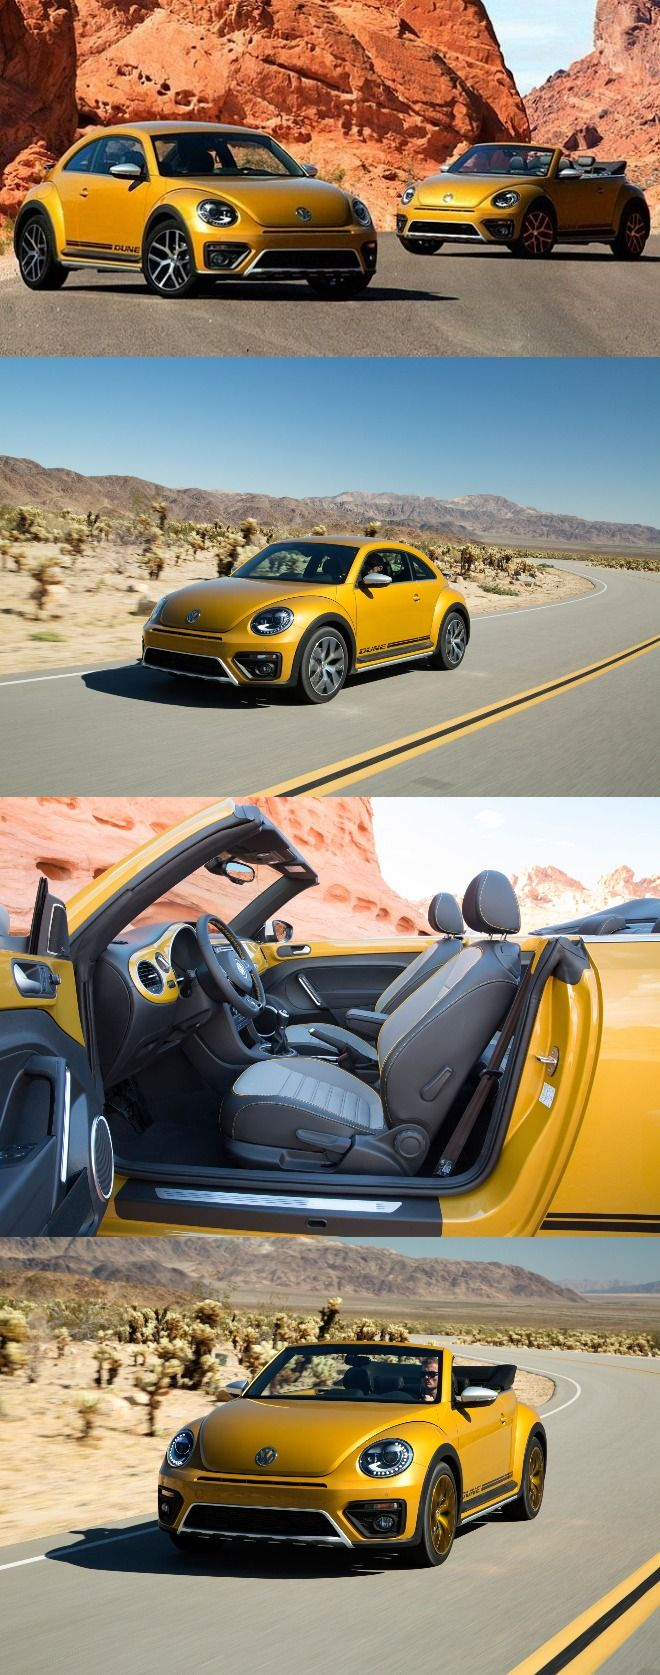 The exciting brand new street legal cruser sport elec car amp golf cart - 2016 Volkswagen Beetle Dune Production Spec Revealed In La